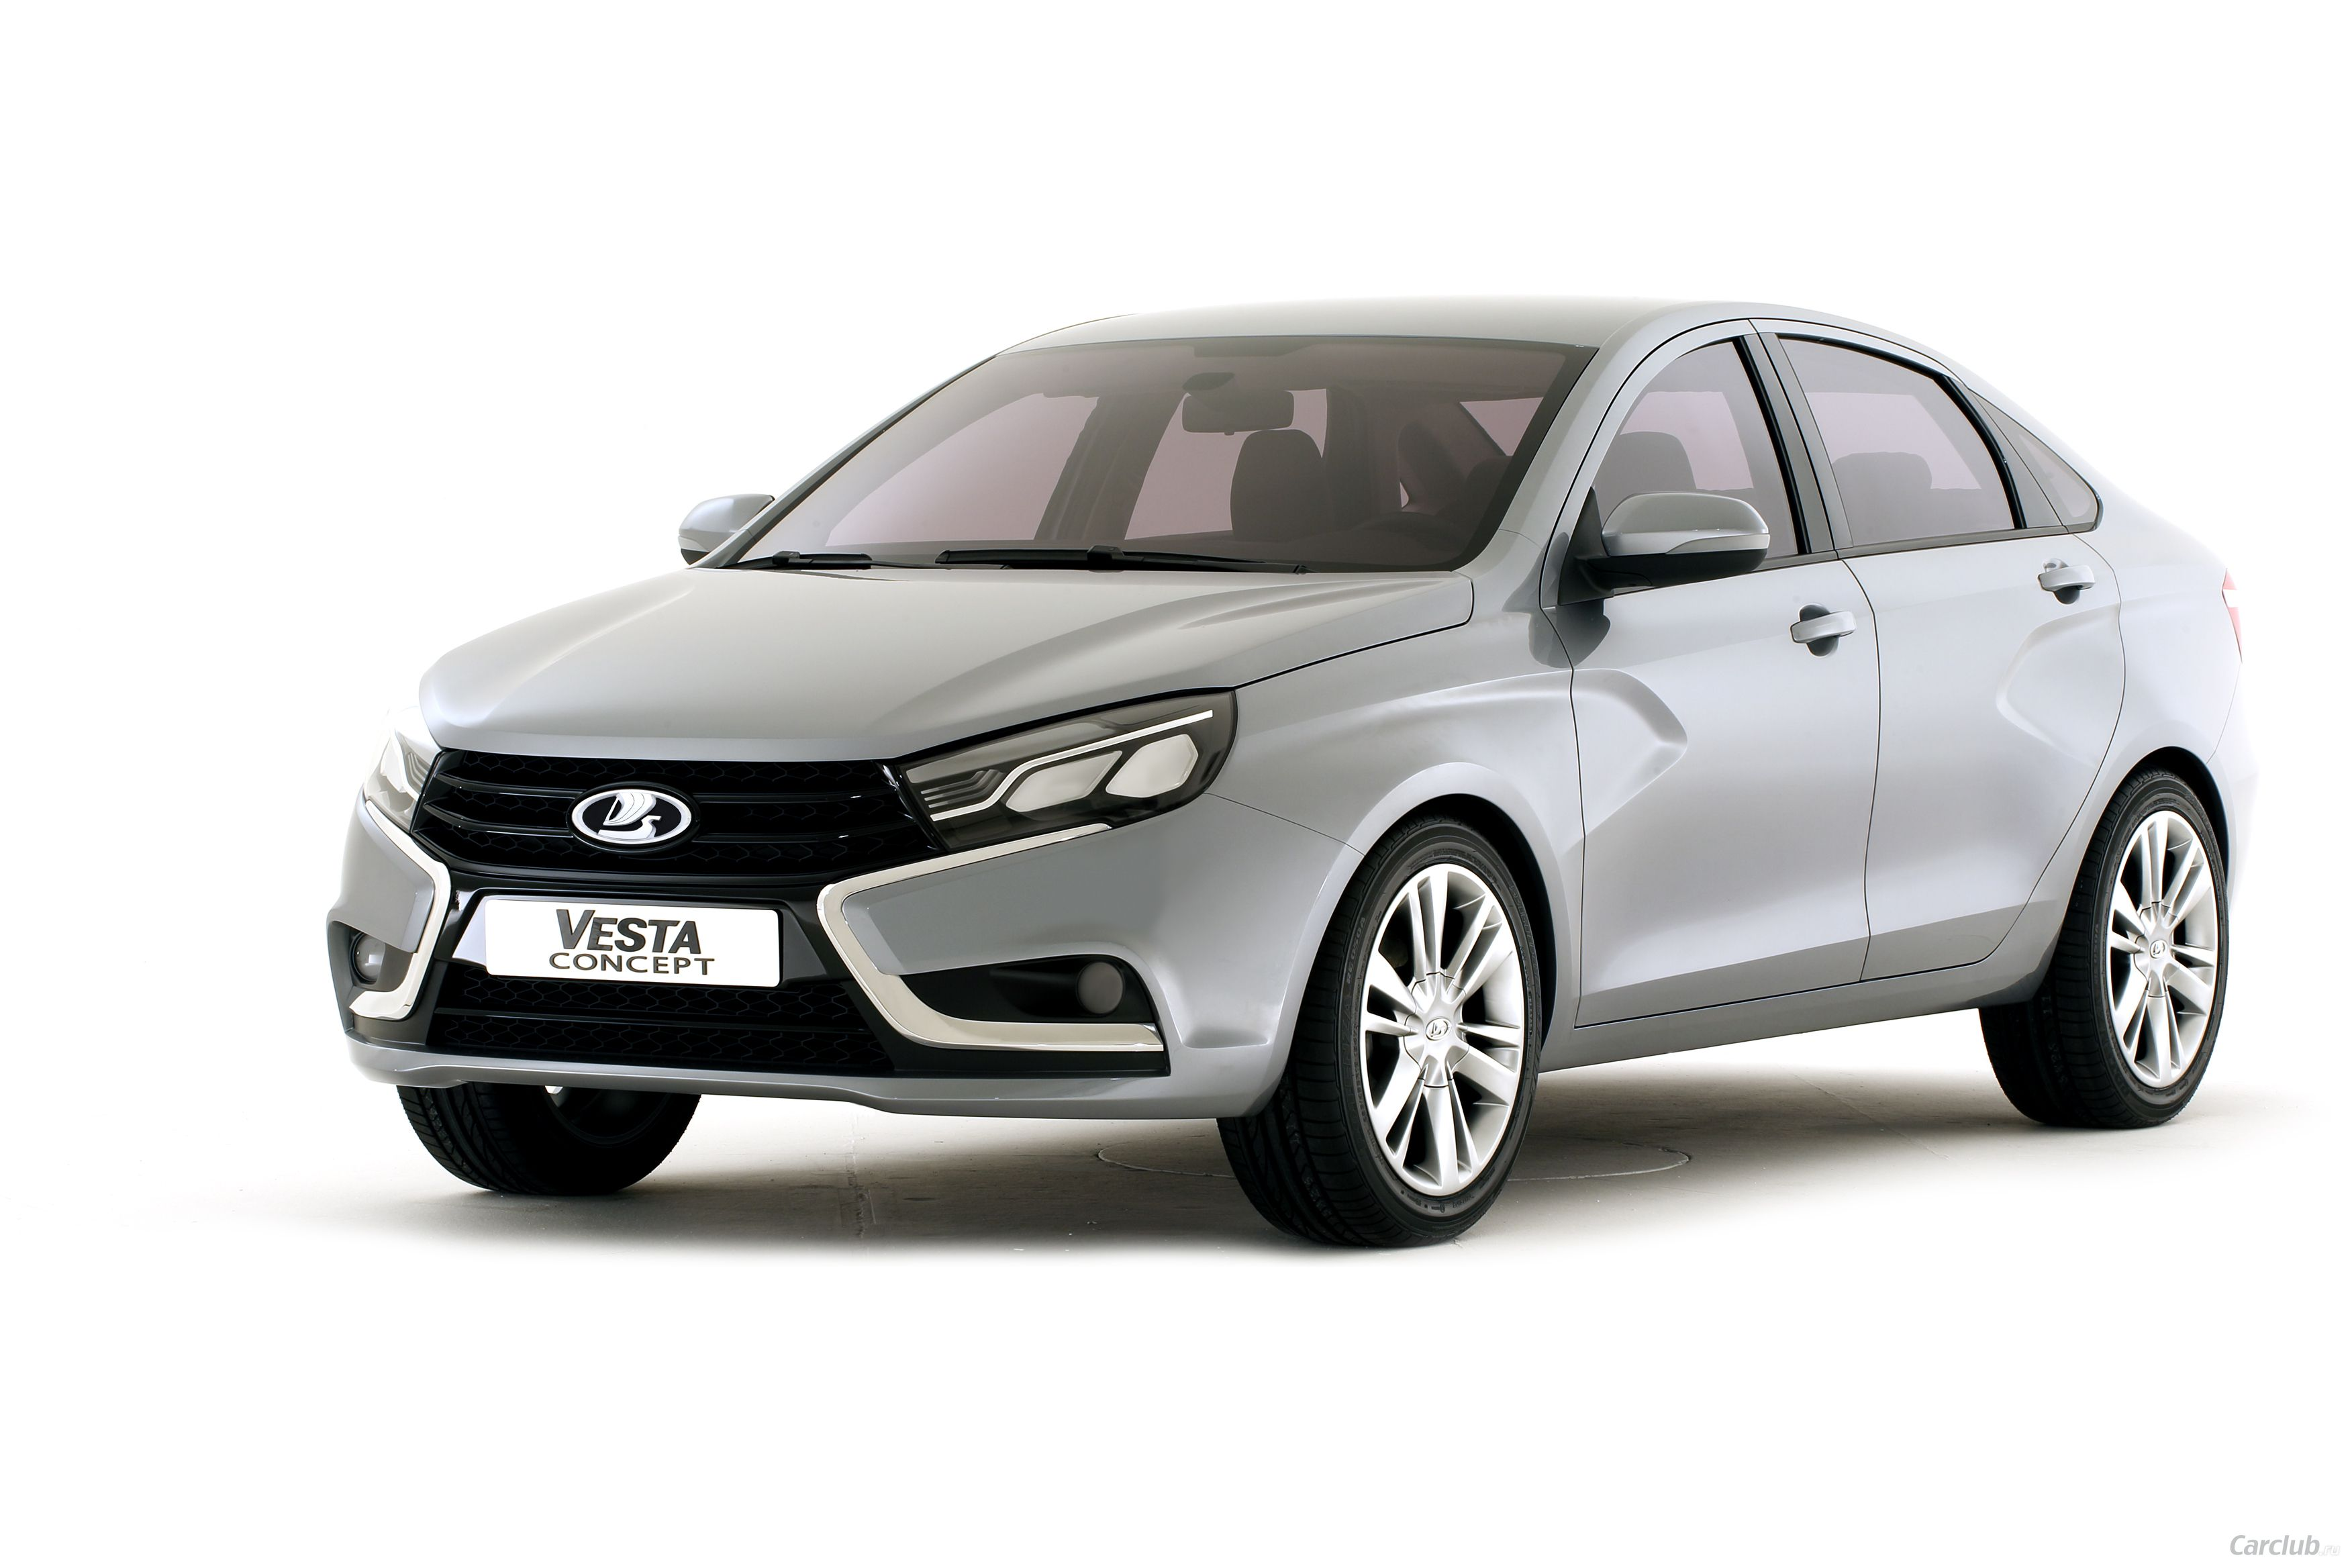 Pin by wallemon to on Car Wallpapers Collection | Lada vesta